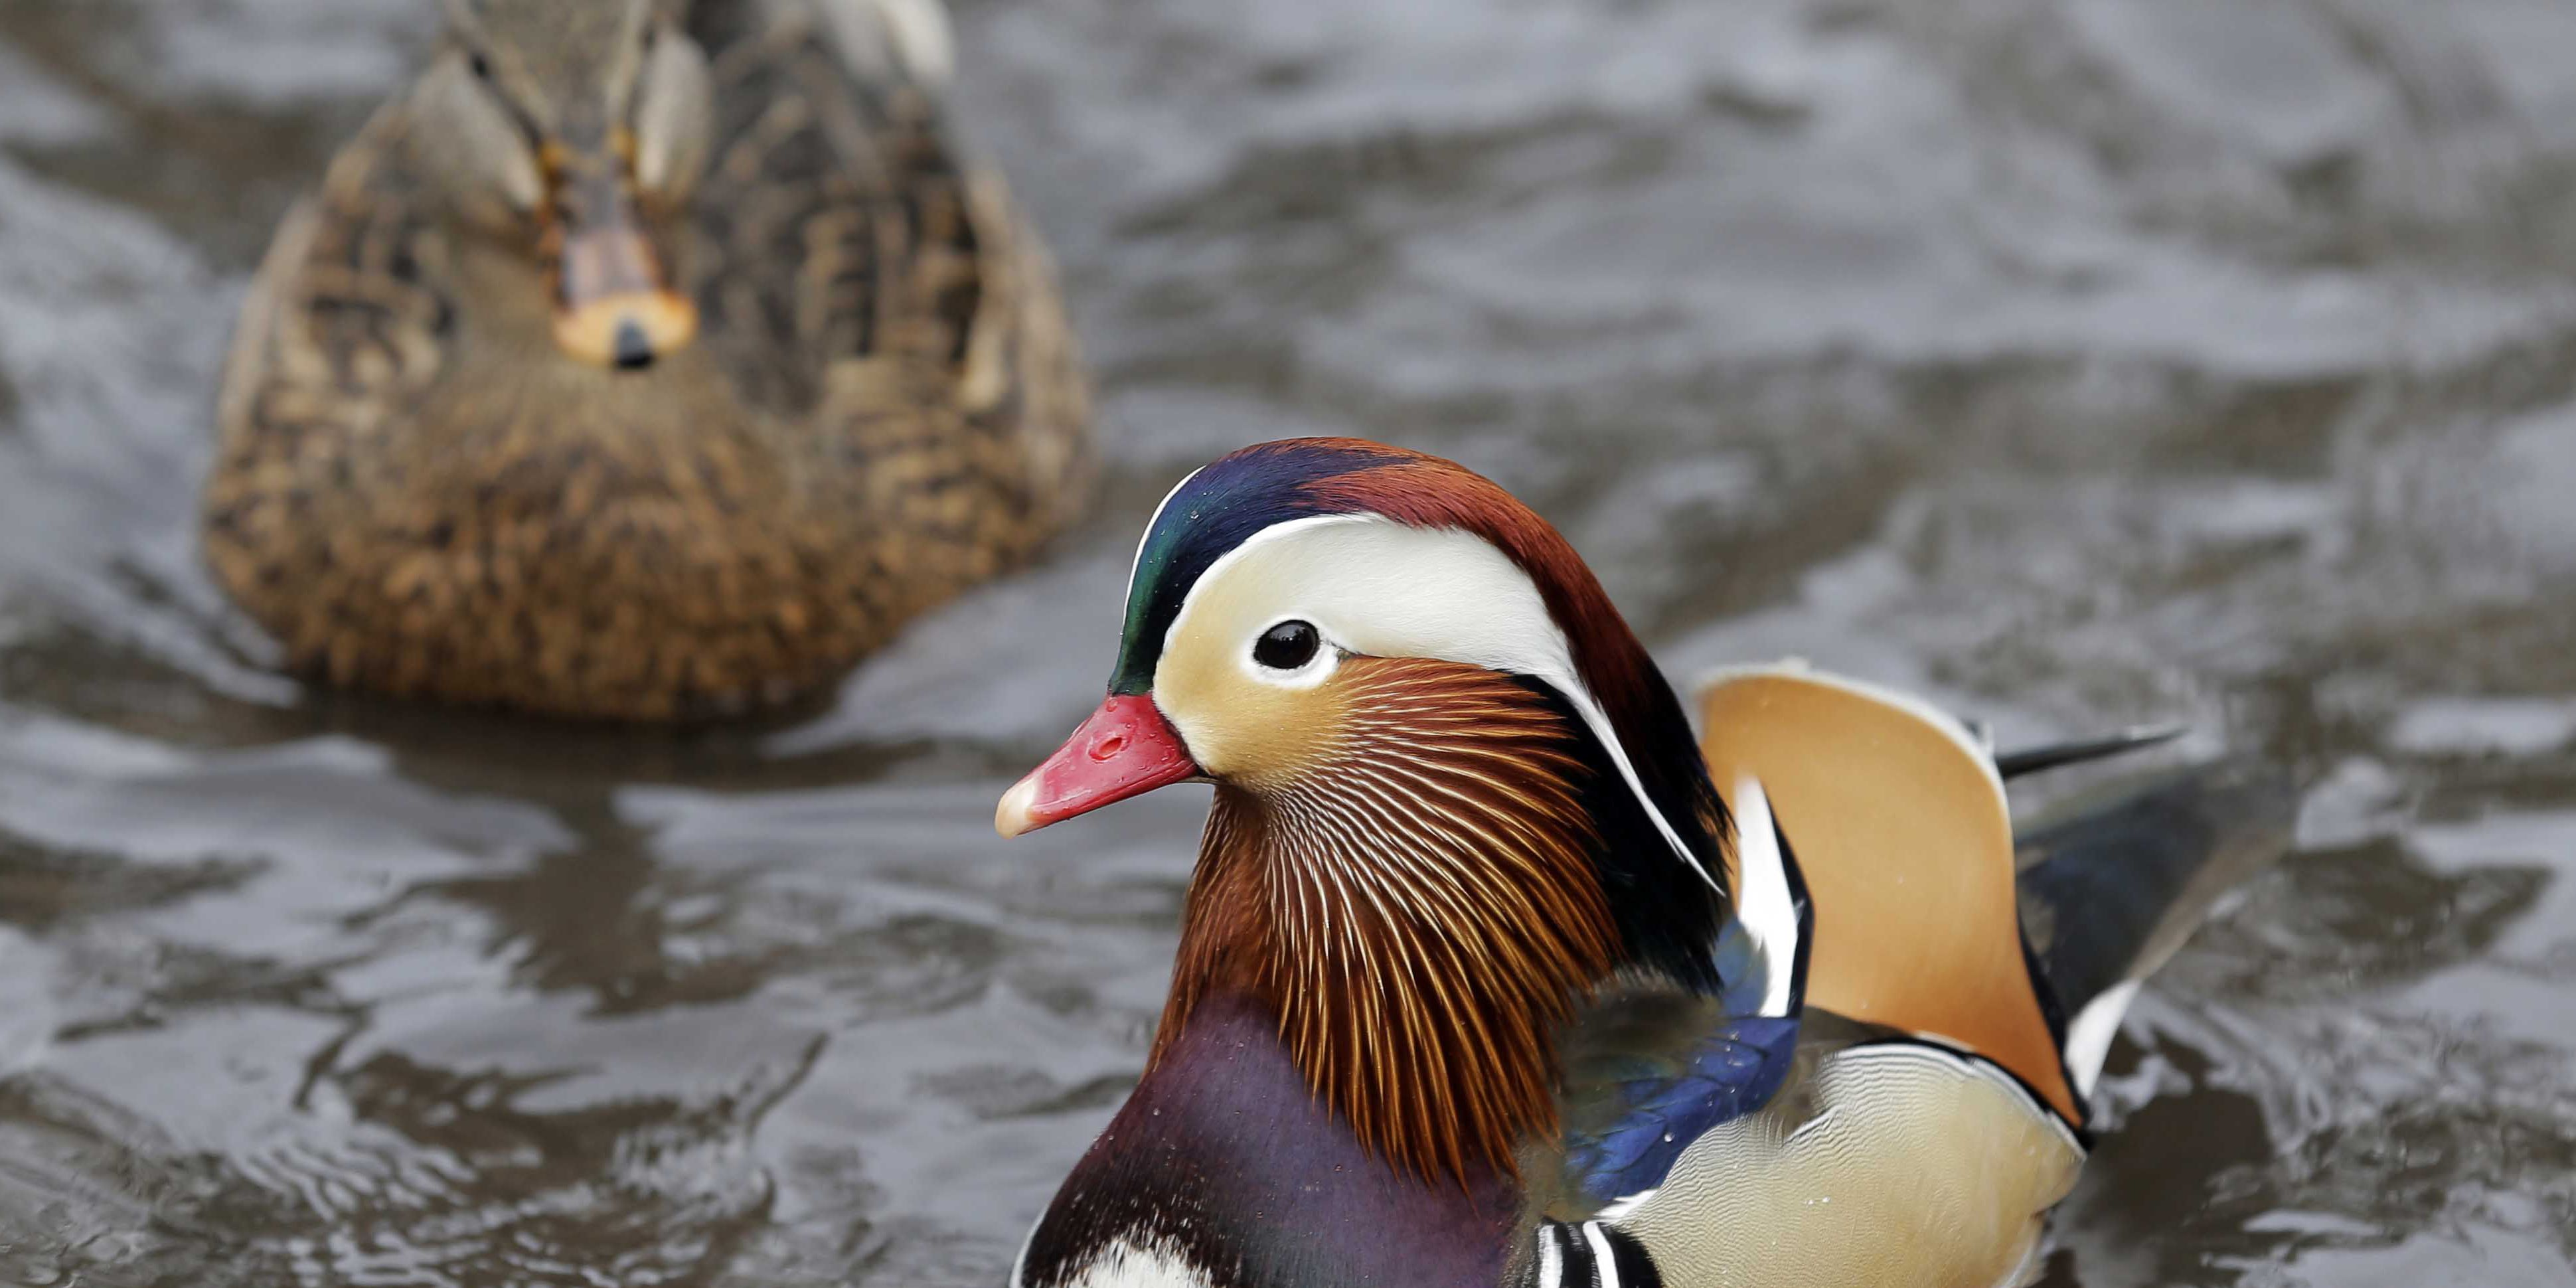 Mandarin duck in Central Park becomes social media star